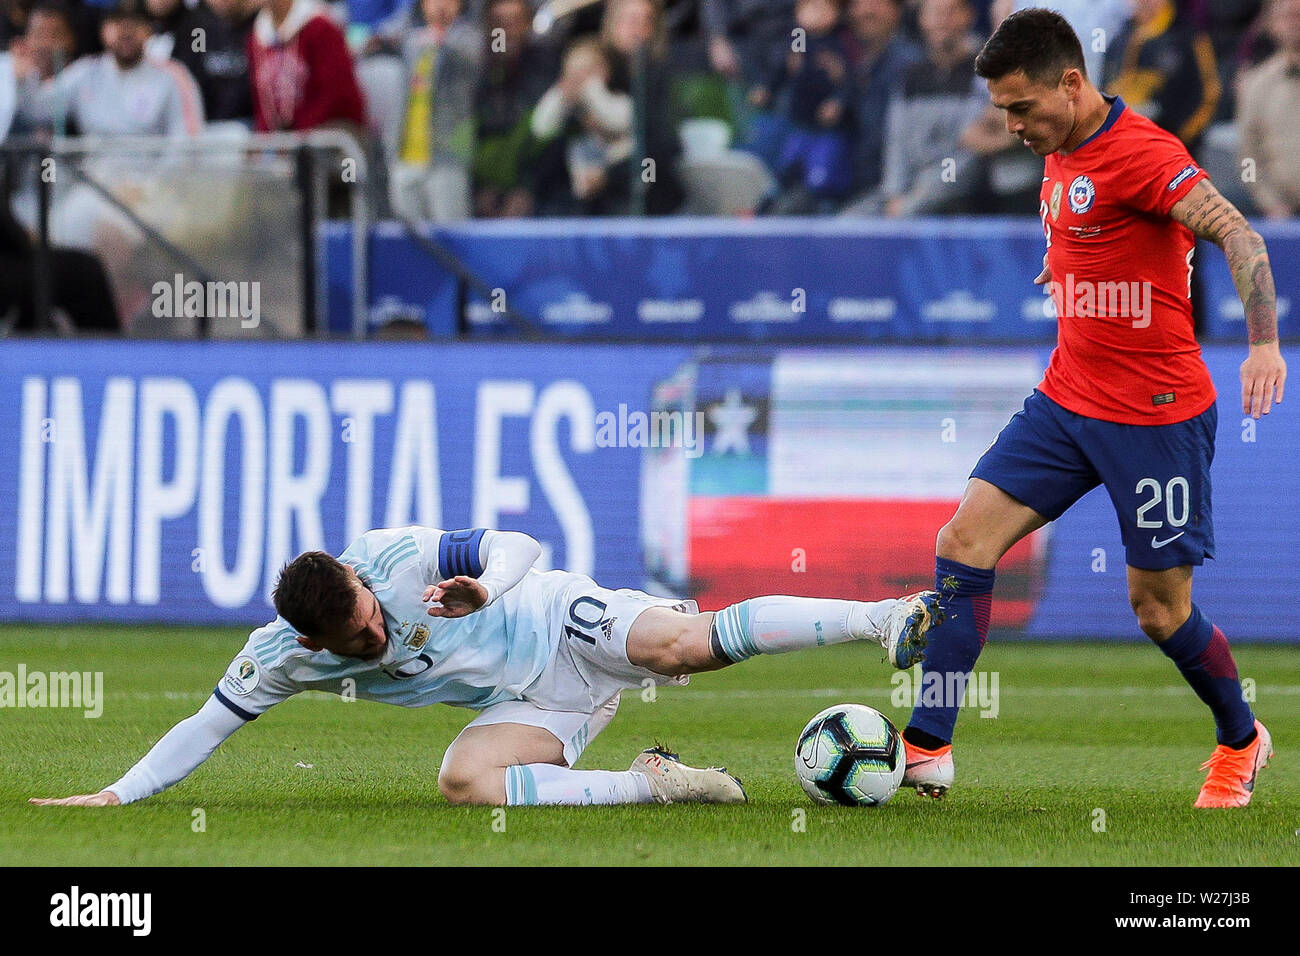 6th July 2019, Arena Corinthians Stadium, Sao Paulo, Brazil; Copa America international football, 3rd-4th playoff final, Argentina versus Chile; Lionel Messi of Argentina brought down by Charles Aránguiz of Chile Stock Photo